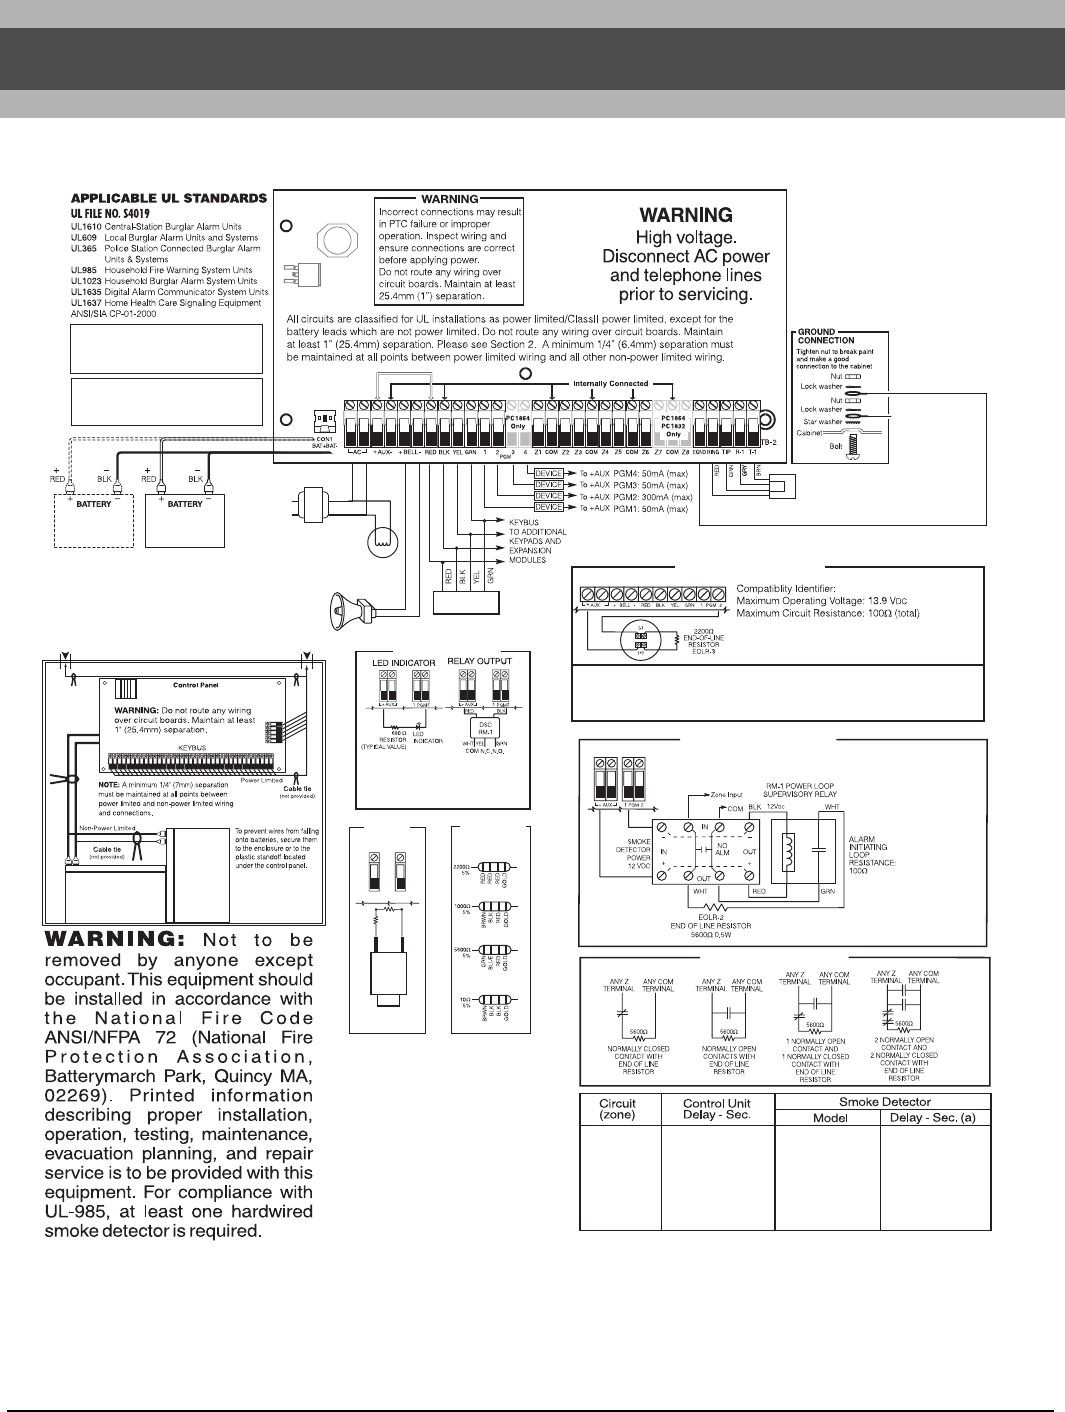 50c05a39 0d40 4920 9012 304bba3d4e33 bg3e page 62 of dsc home security system pc1616 pc1832 pc1864 user dsc wiring diagram at fashall.co